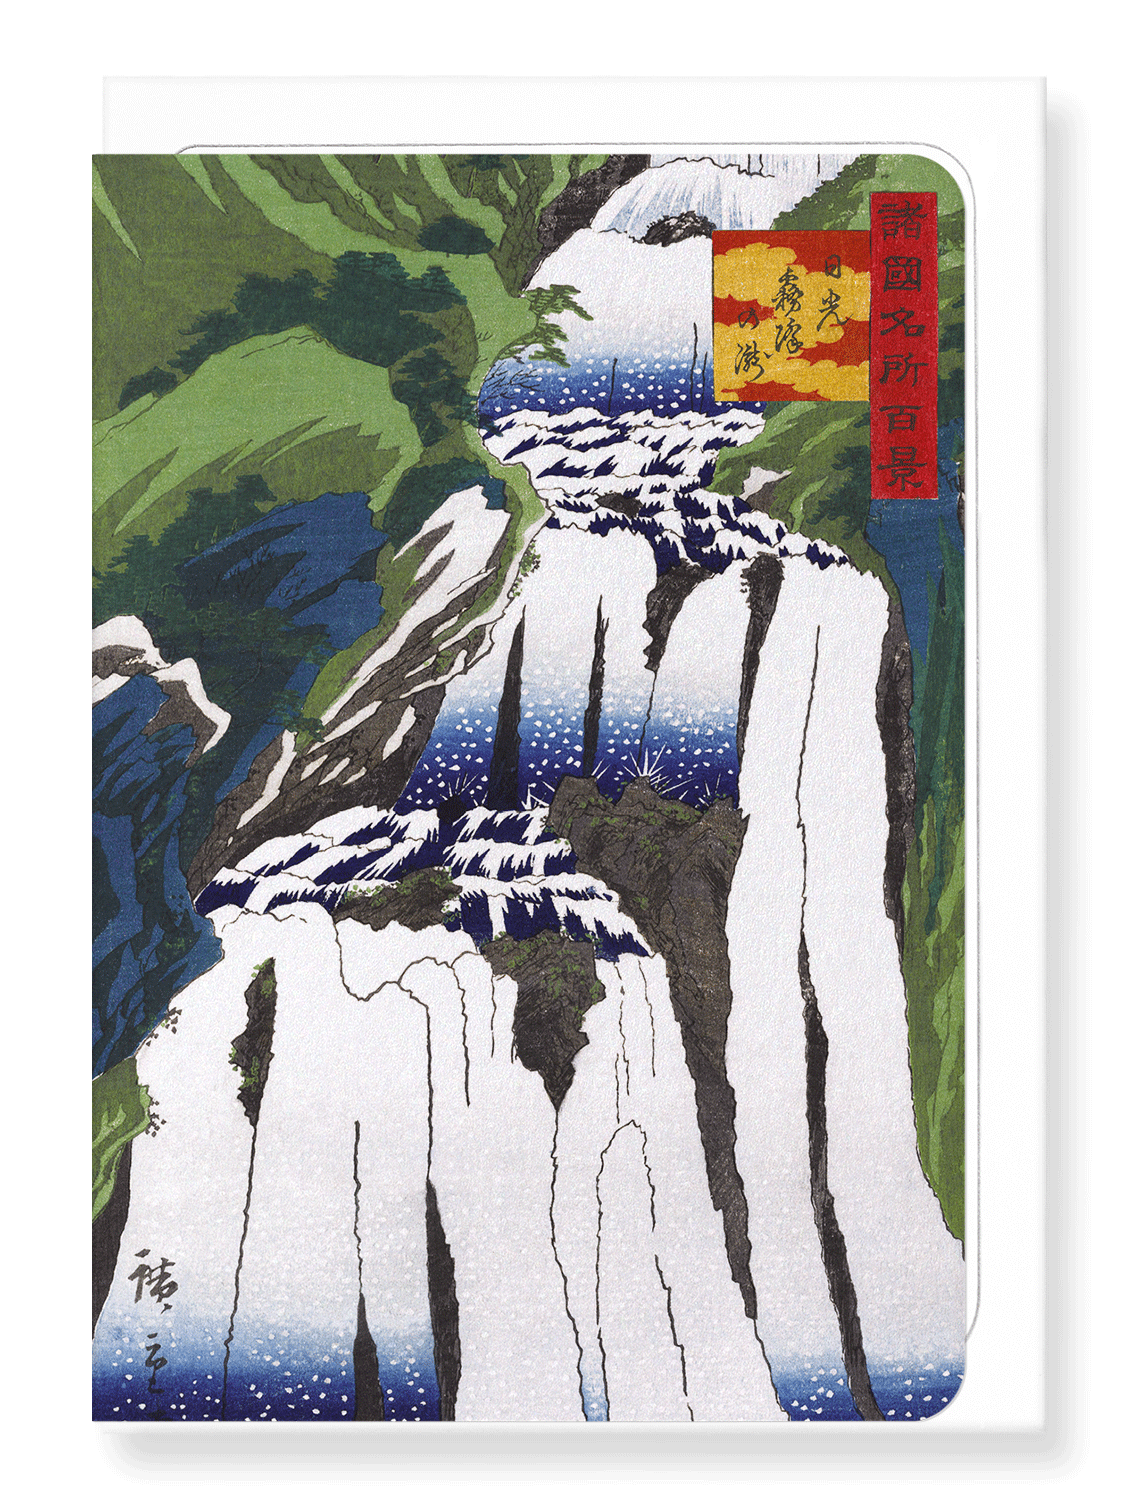 Ezen Designs - Waterfall in nikko - Greeting Card - Front